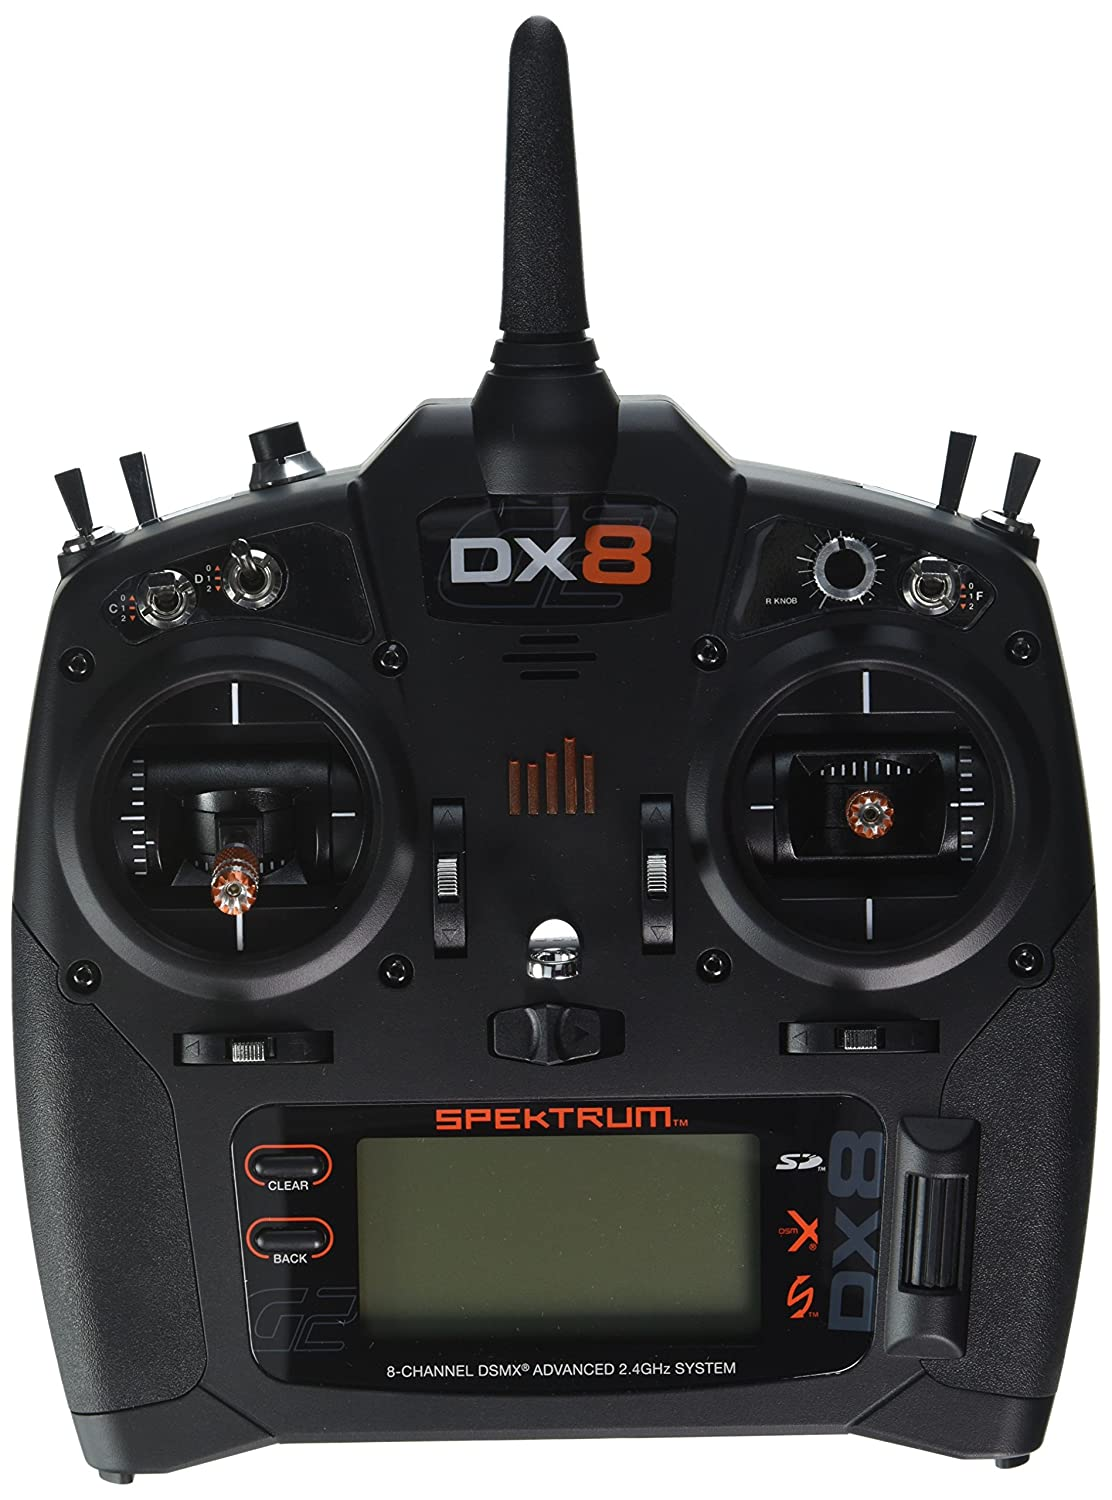 Best RC Transmitter For Planes Reviews: Top-5 in September 2019!